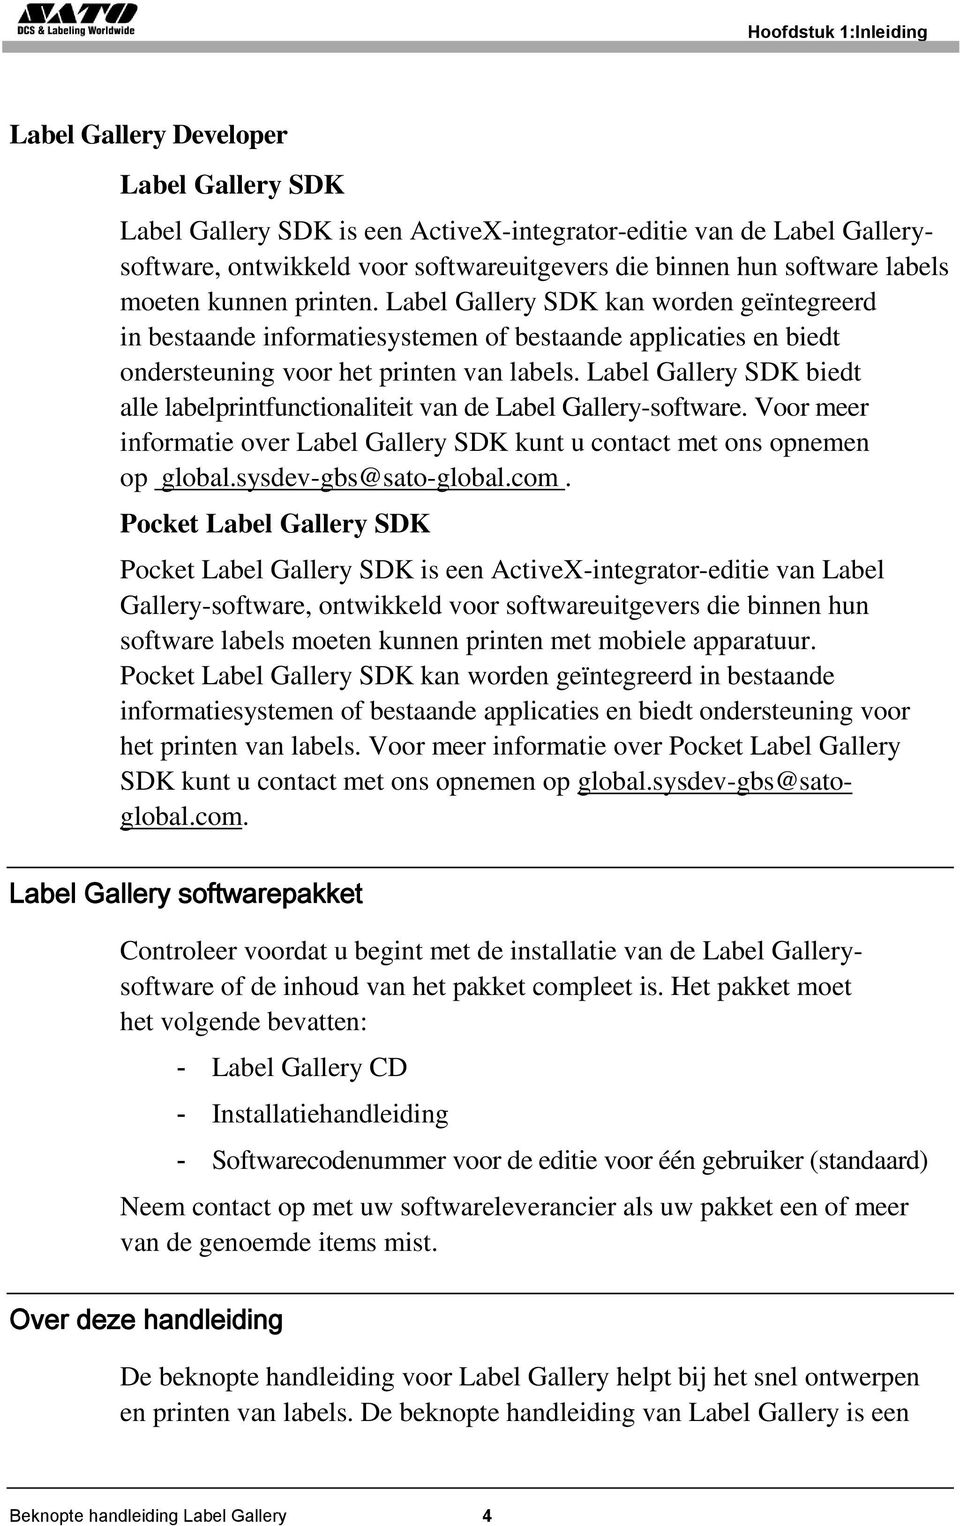 Label Gallery SDK biedt alle labelprintfunctionaliteit van de Label Gallery-software. Voor meer informatie over Label Gallery SDK kunt u contact met ons opnemen op global.sysdev-gbs@sato-global.com.